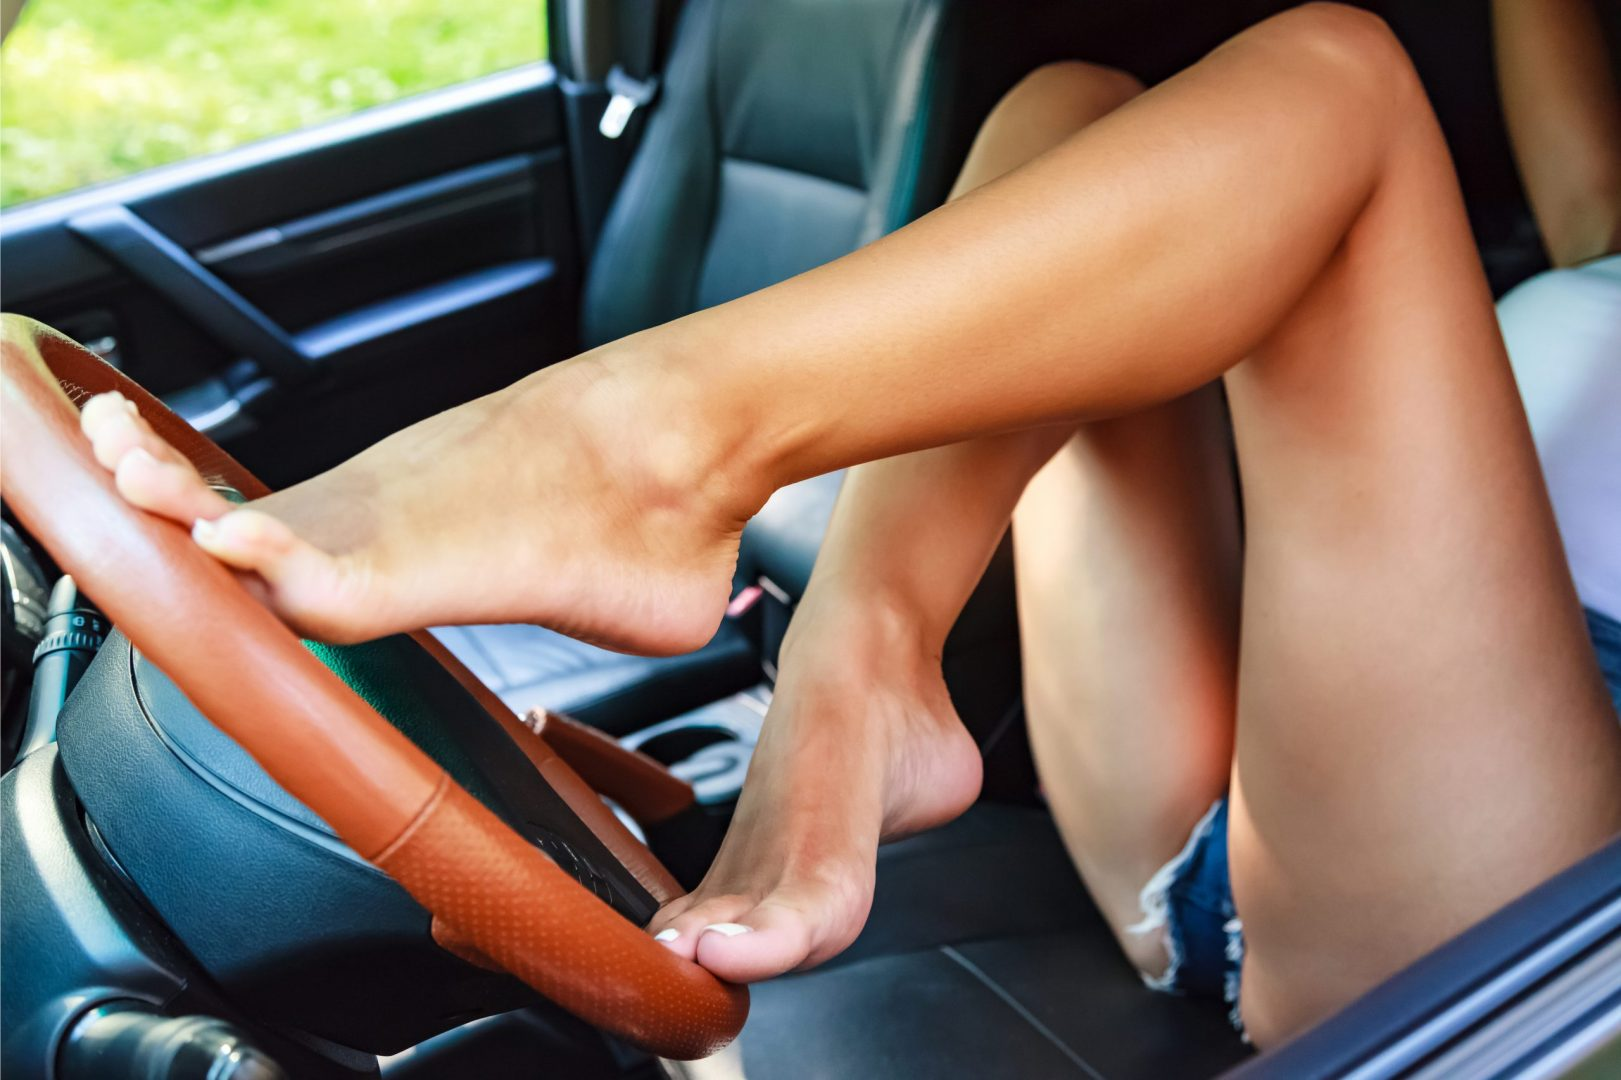 woman with sexy feet